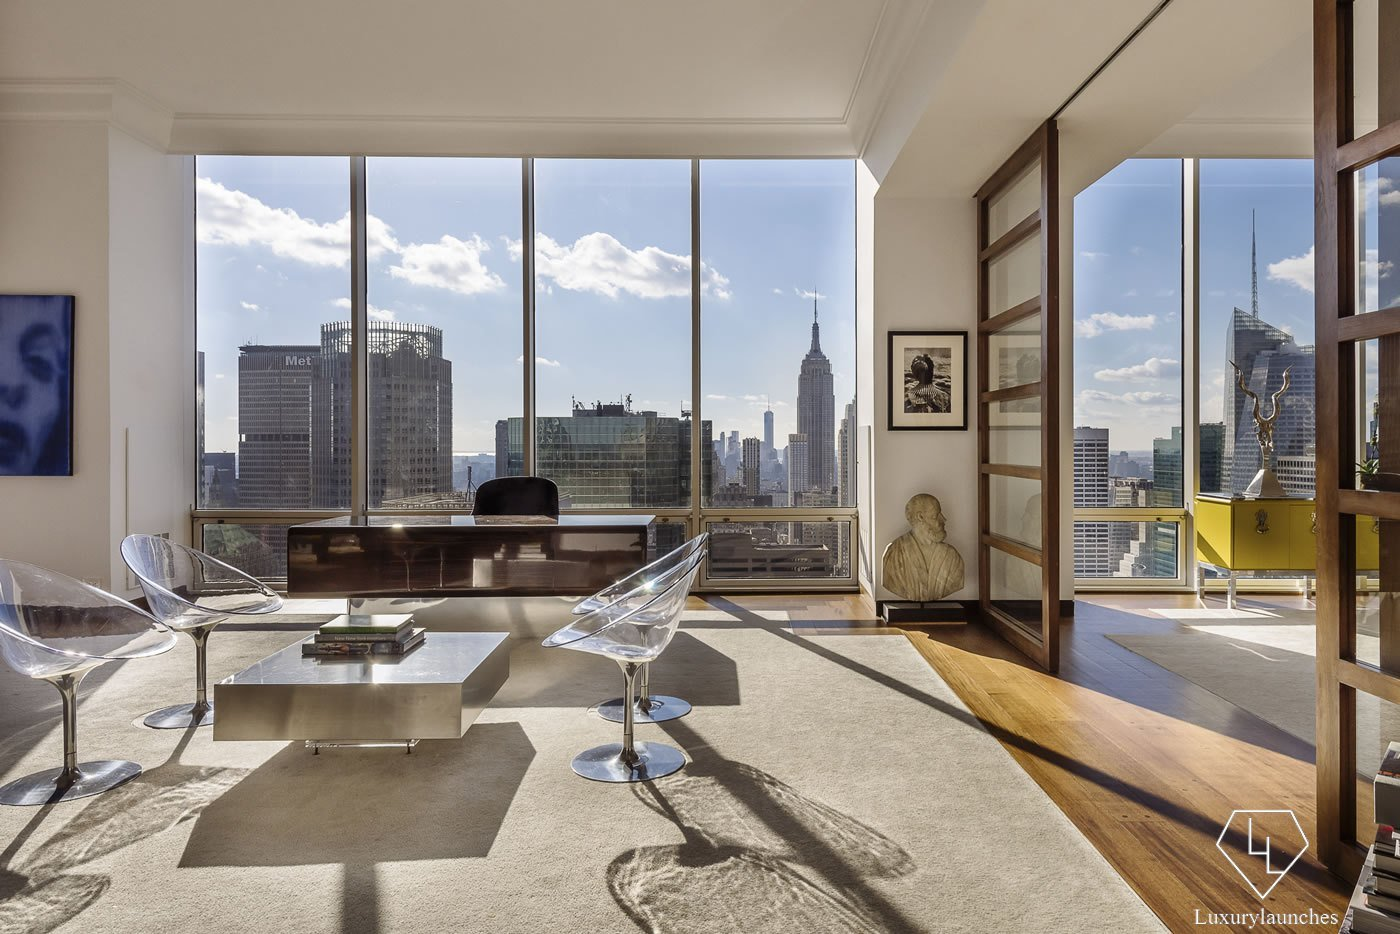 Gucci 39 s 38 million penthouse in manhattan is up for sale for Design apartment 2 budapest